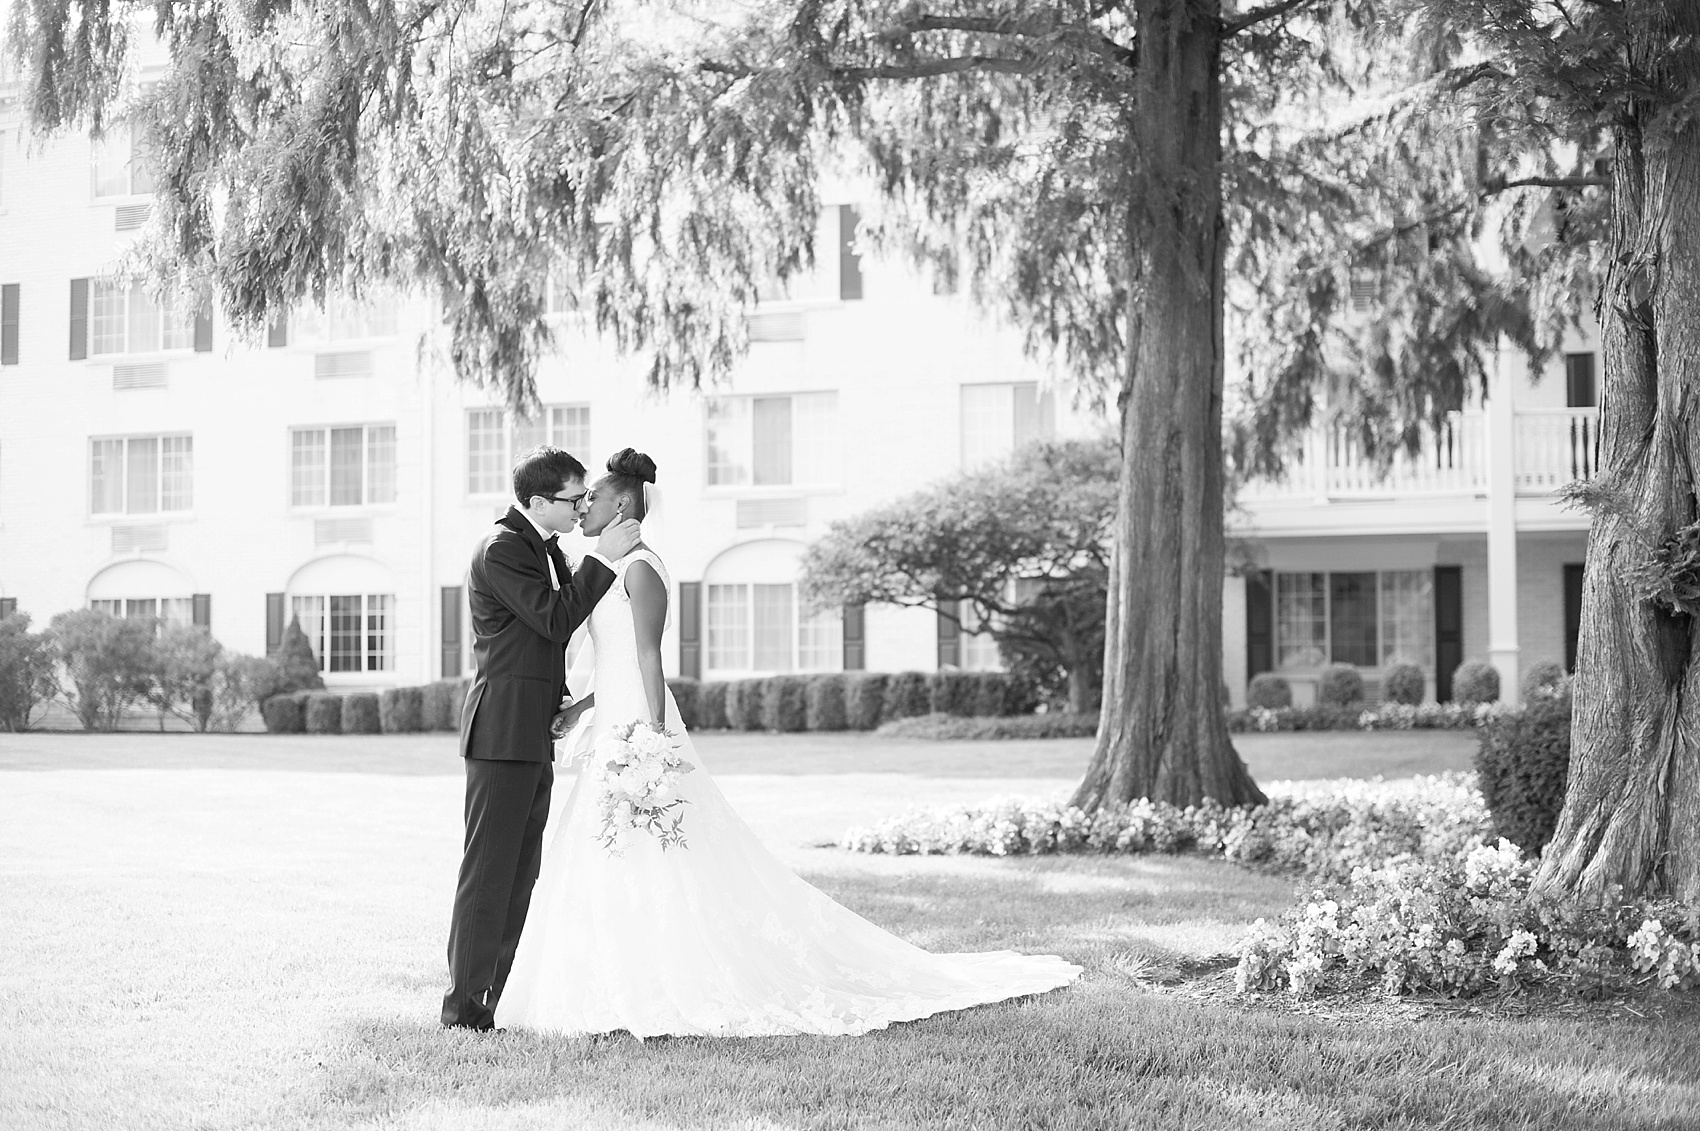 Bride and groom kiss at The Conservatory at the Madison Hotel, New Jersey. Photos by Mikkel Paige Photography.